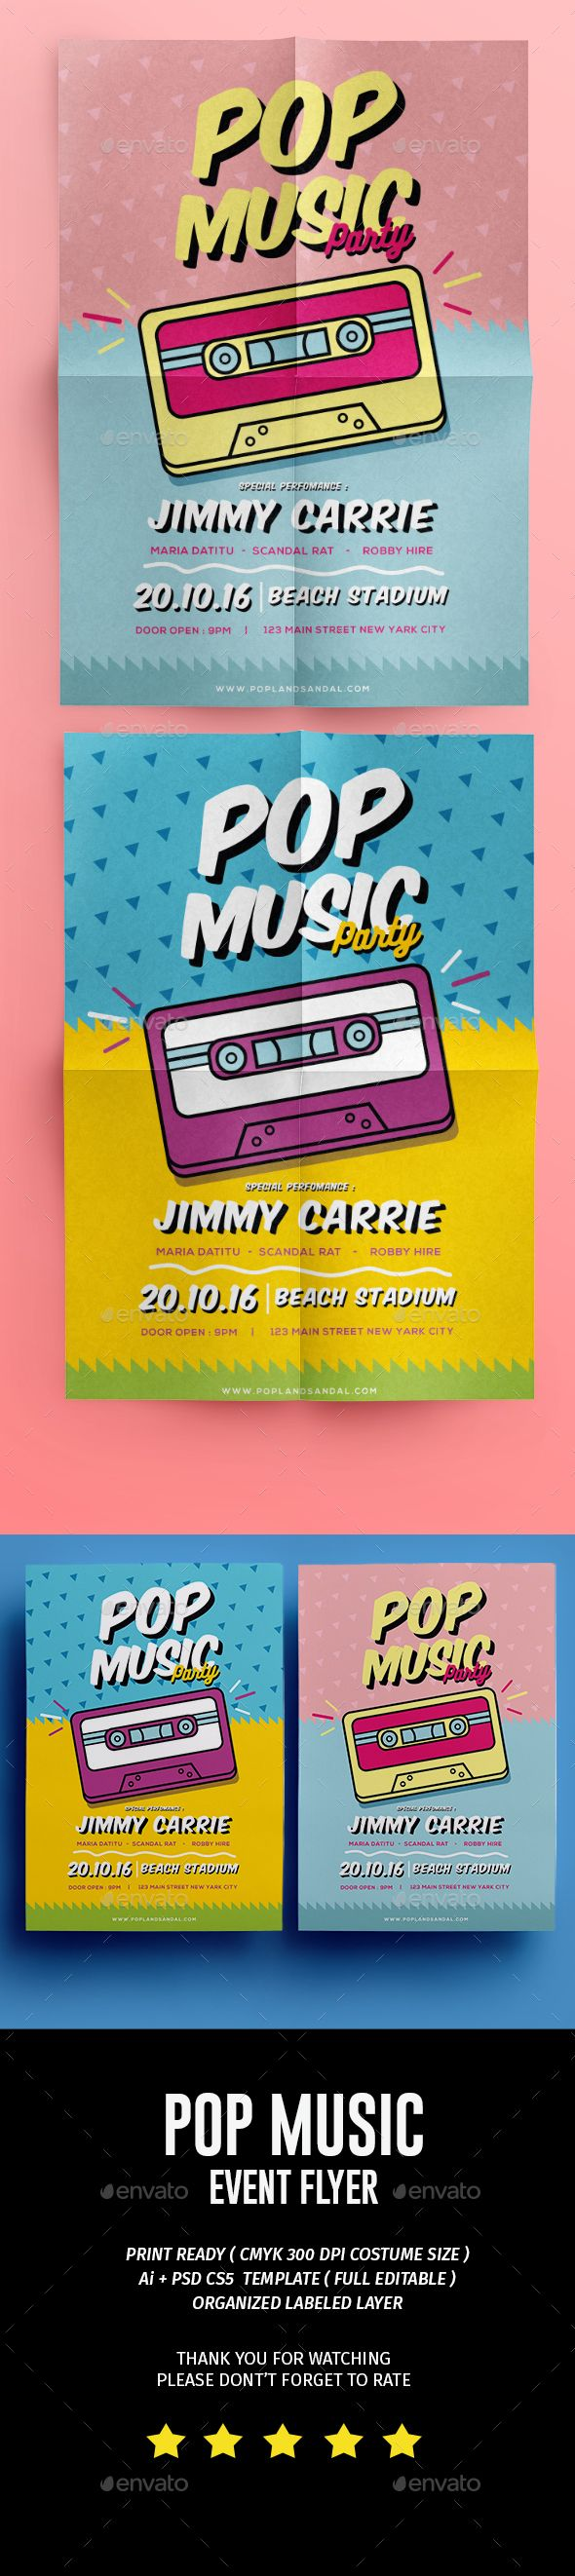 Pop Music Flyer Template PSD, AI Illustrator. Download here: https://graphicriver.net/item/pop-music-flyer/17494833?ref=ksioks